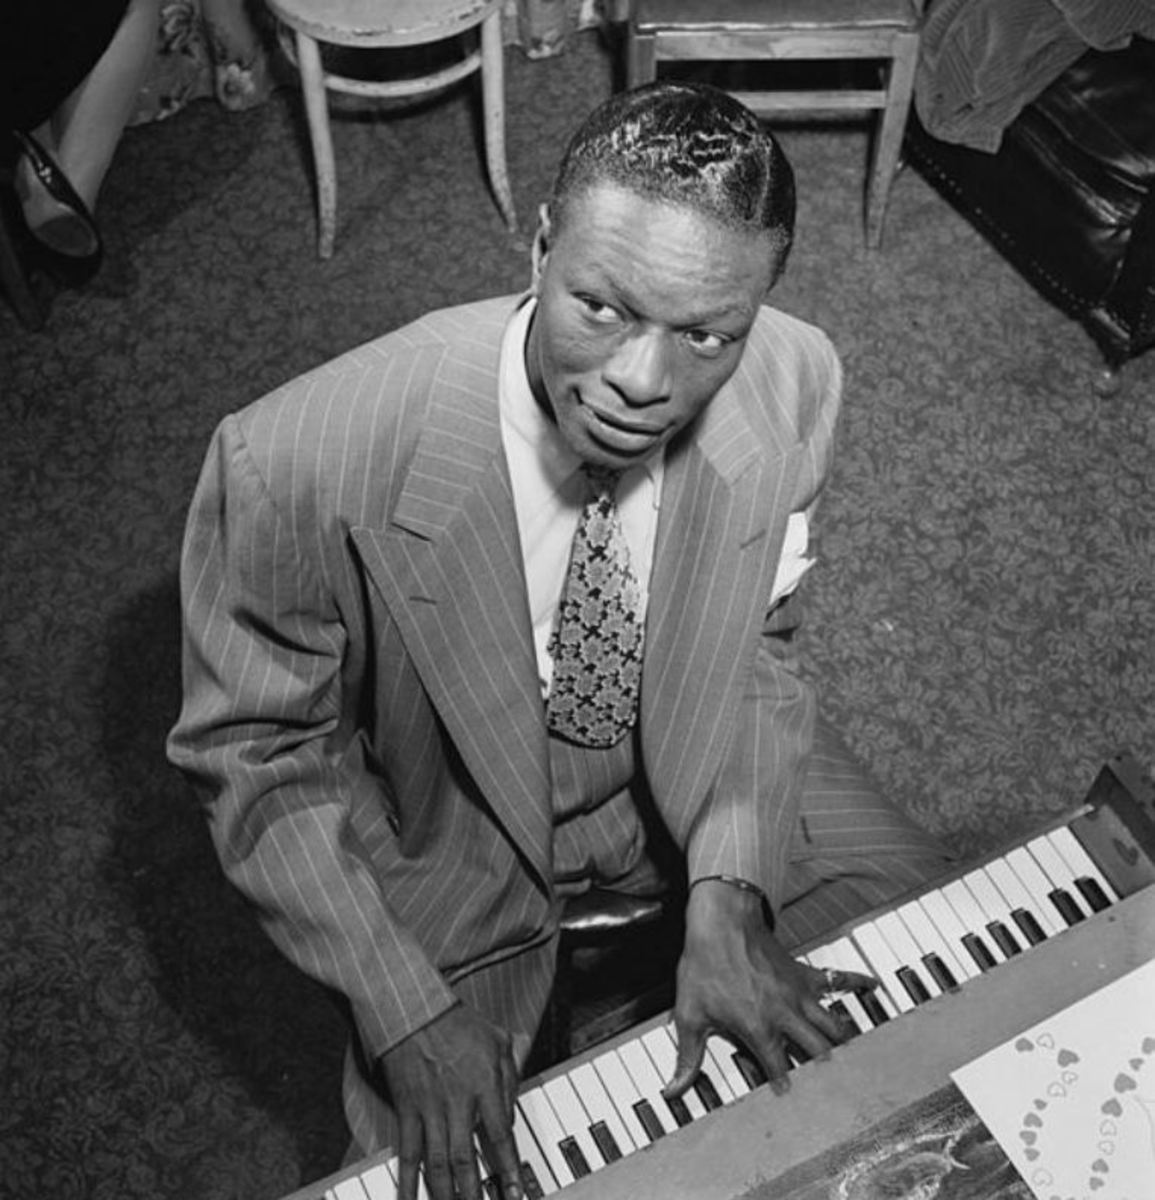 Nat King Cole the jazz pianist